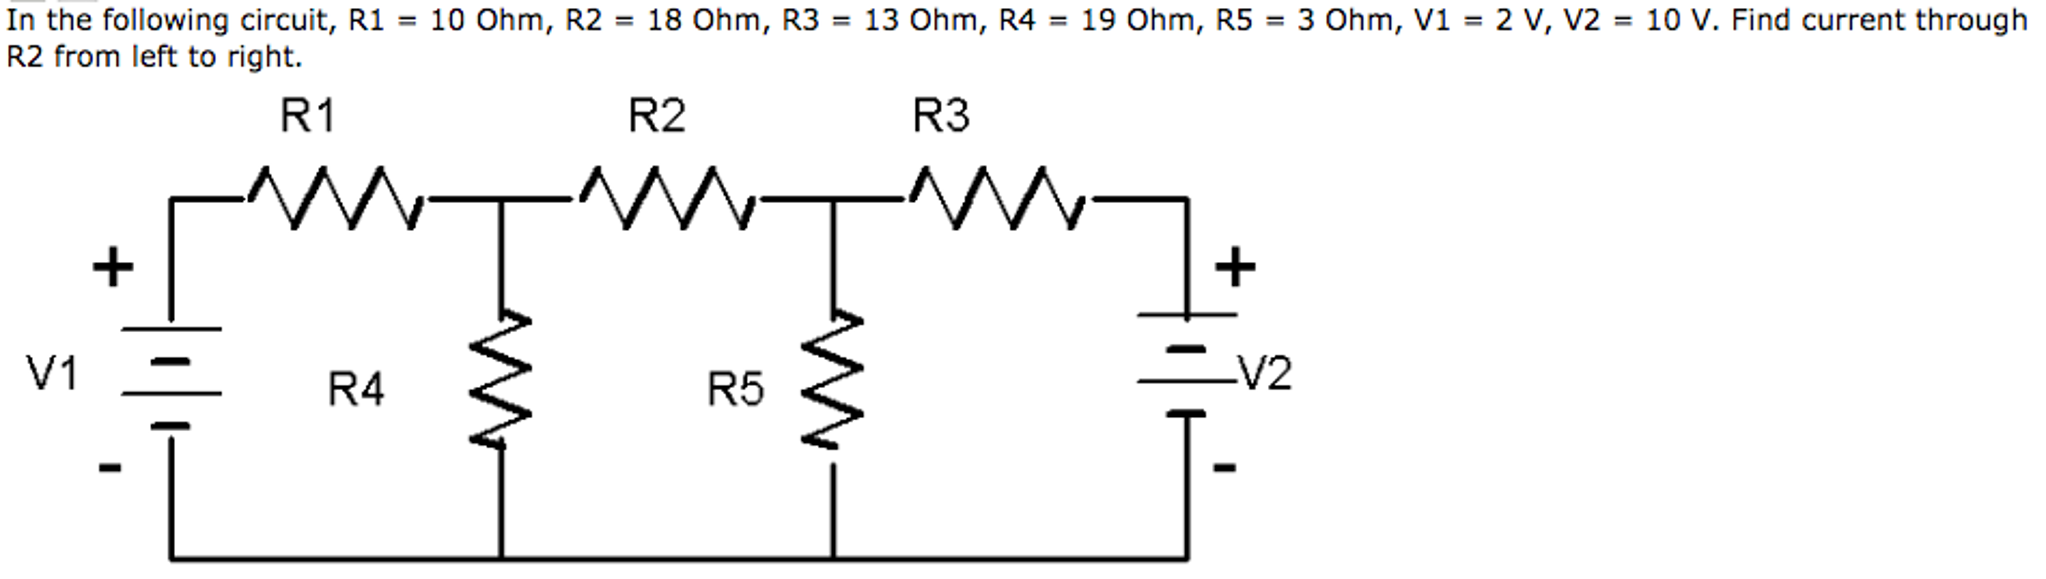 Electrical engineering archive october 30 2016 chegg in the following circuit r1 10 ohm r2 18 ohm fandeluxe Image collections